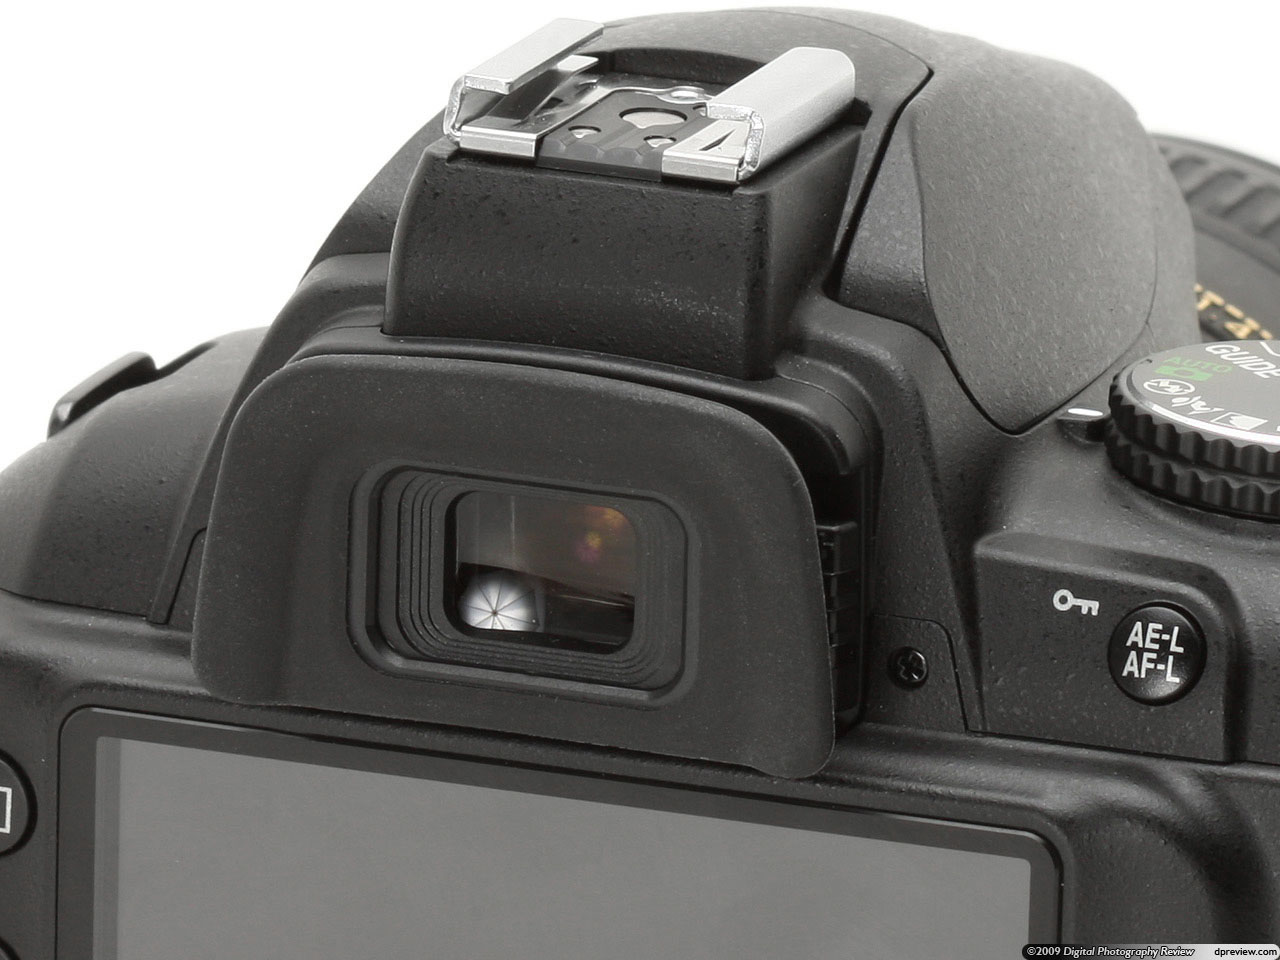 Upscale Each Grid Lines Can Besuperimposed On Nikon Digital Photography Review Nikon D3000 Review Youtube Nikon D3000 Body Review Is Offers Viewfinder Coverage Pentamirror dpreview Nikon D3000 Review